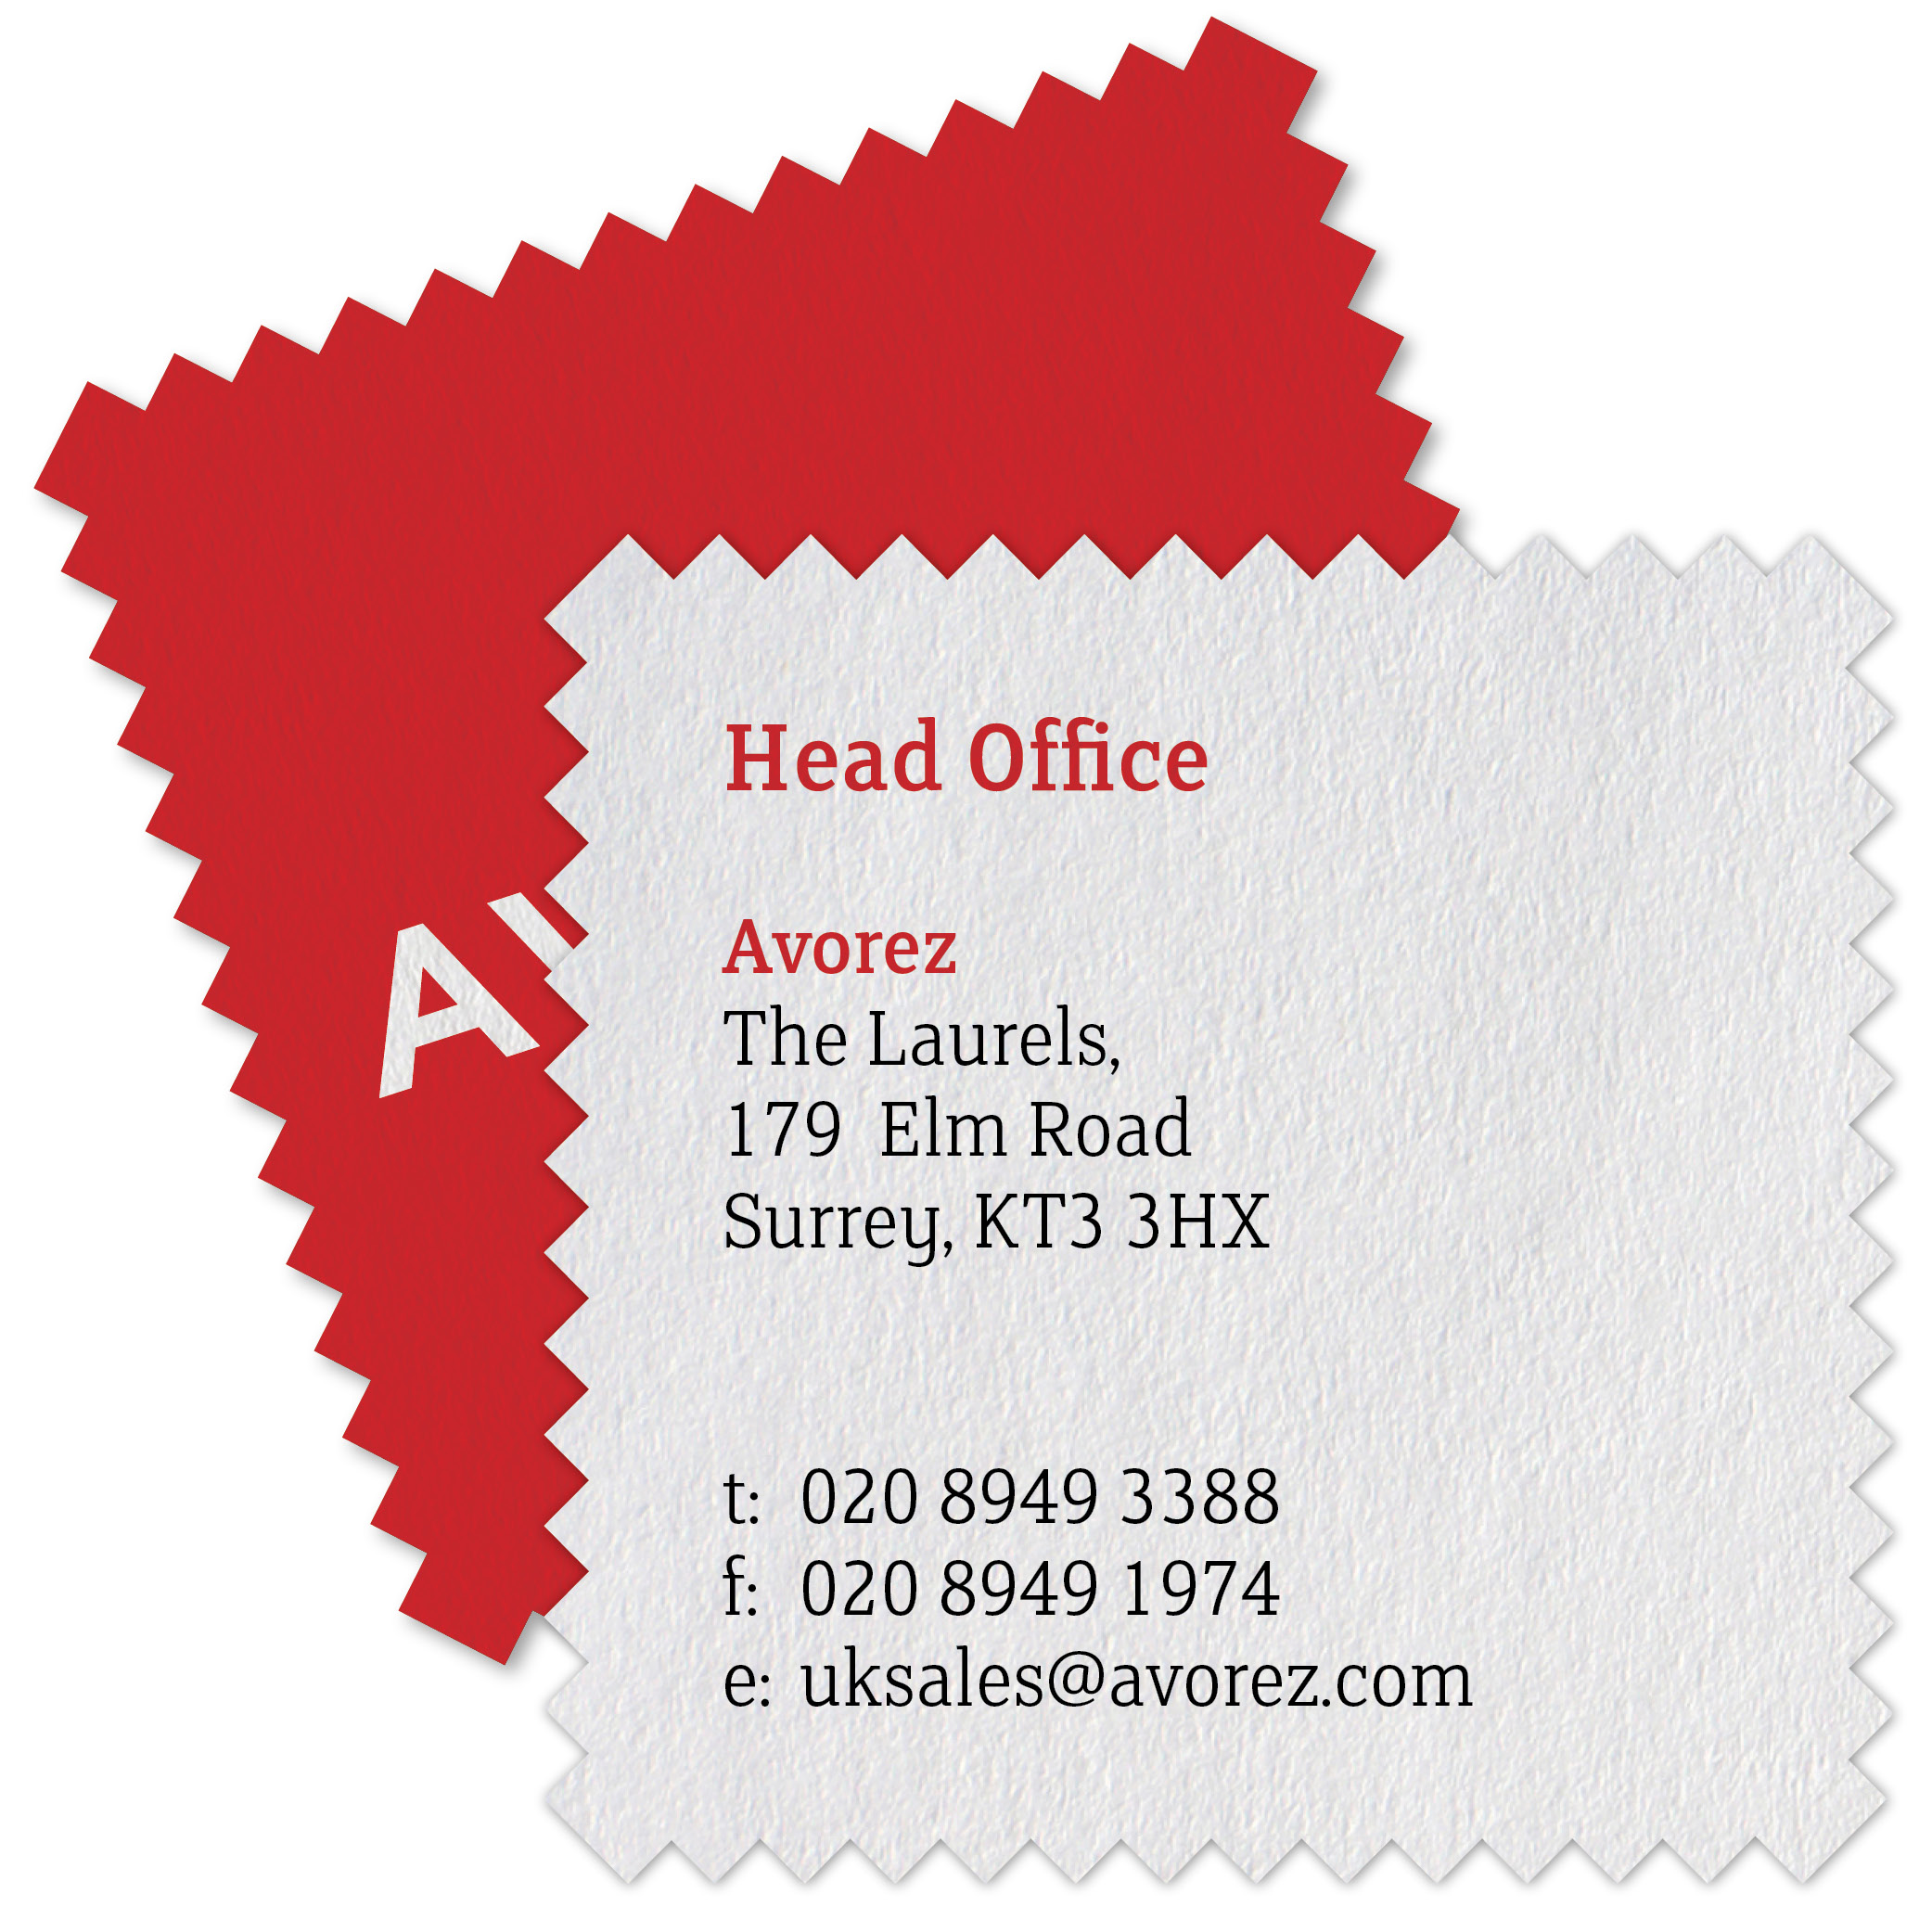 Avorez Stationery website.jpg